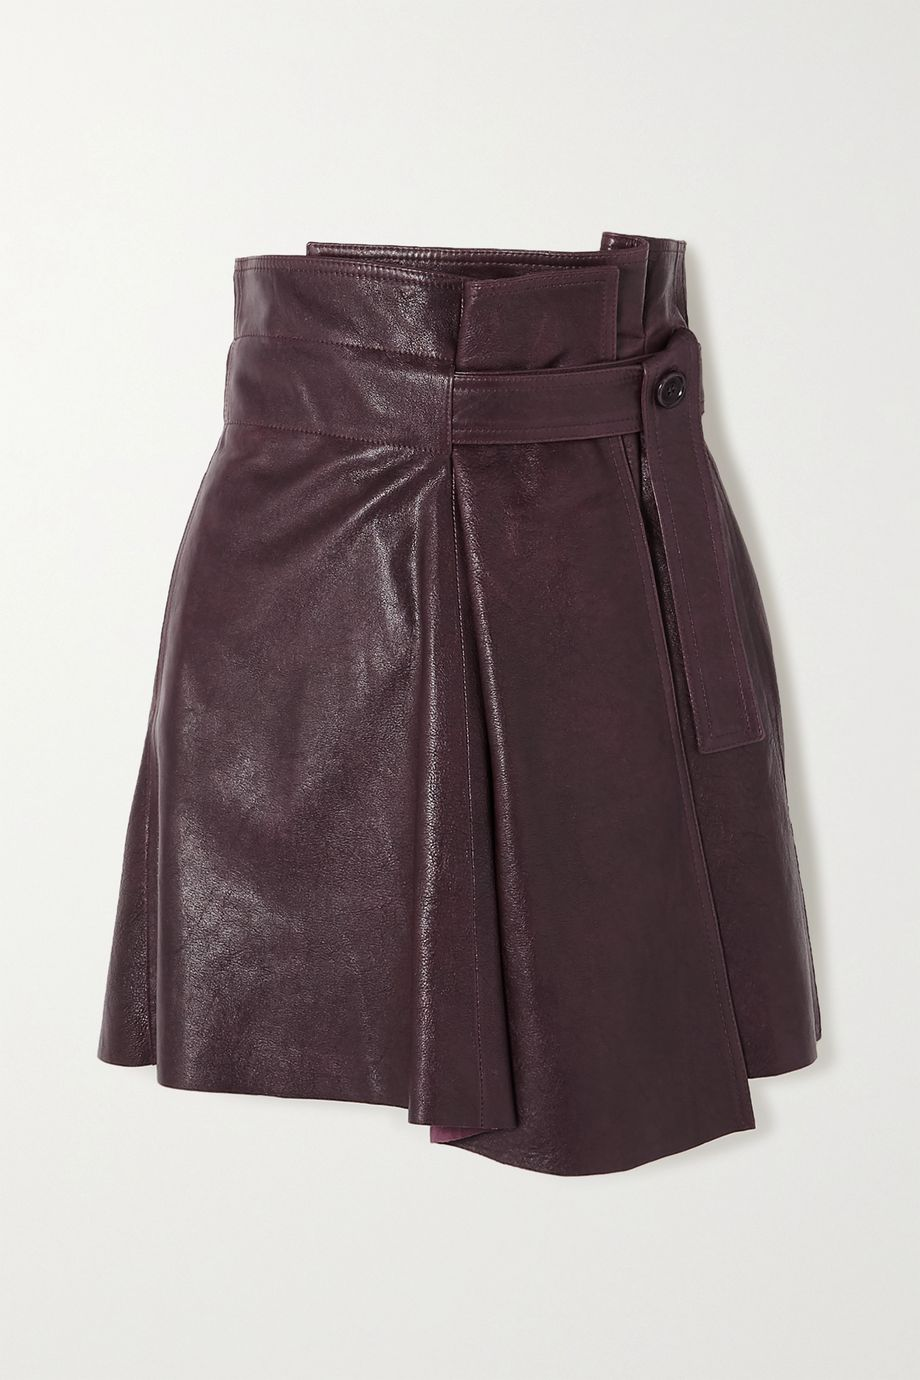 Chloé Belted pleated leather wrap mini skirt